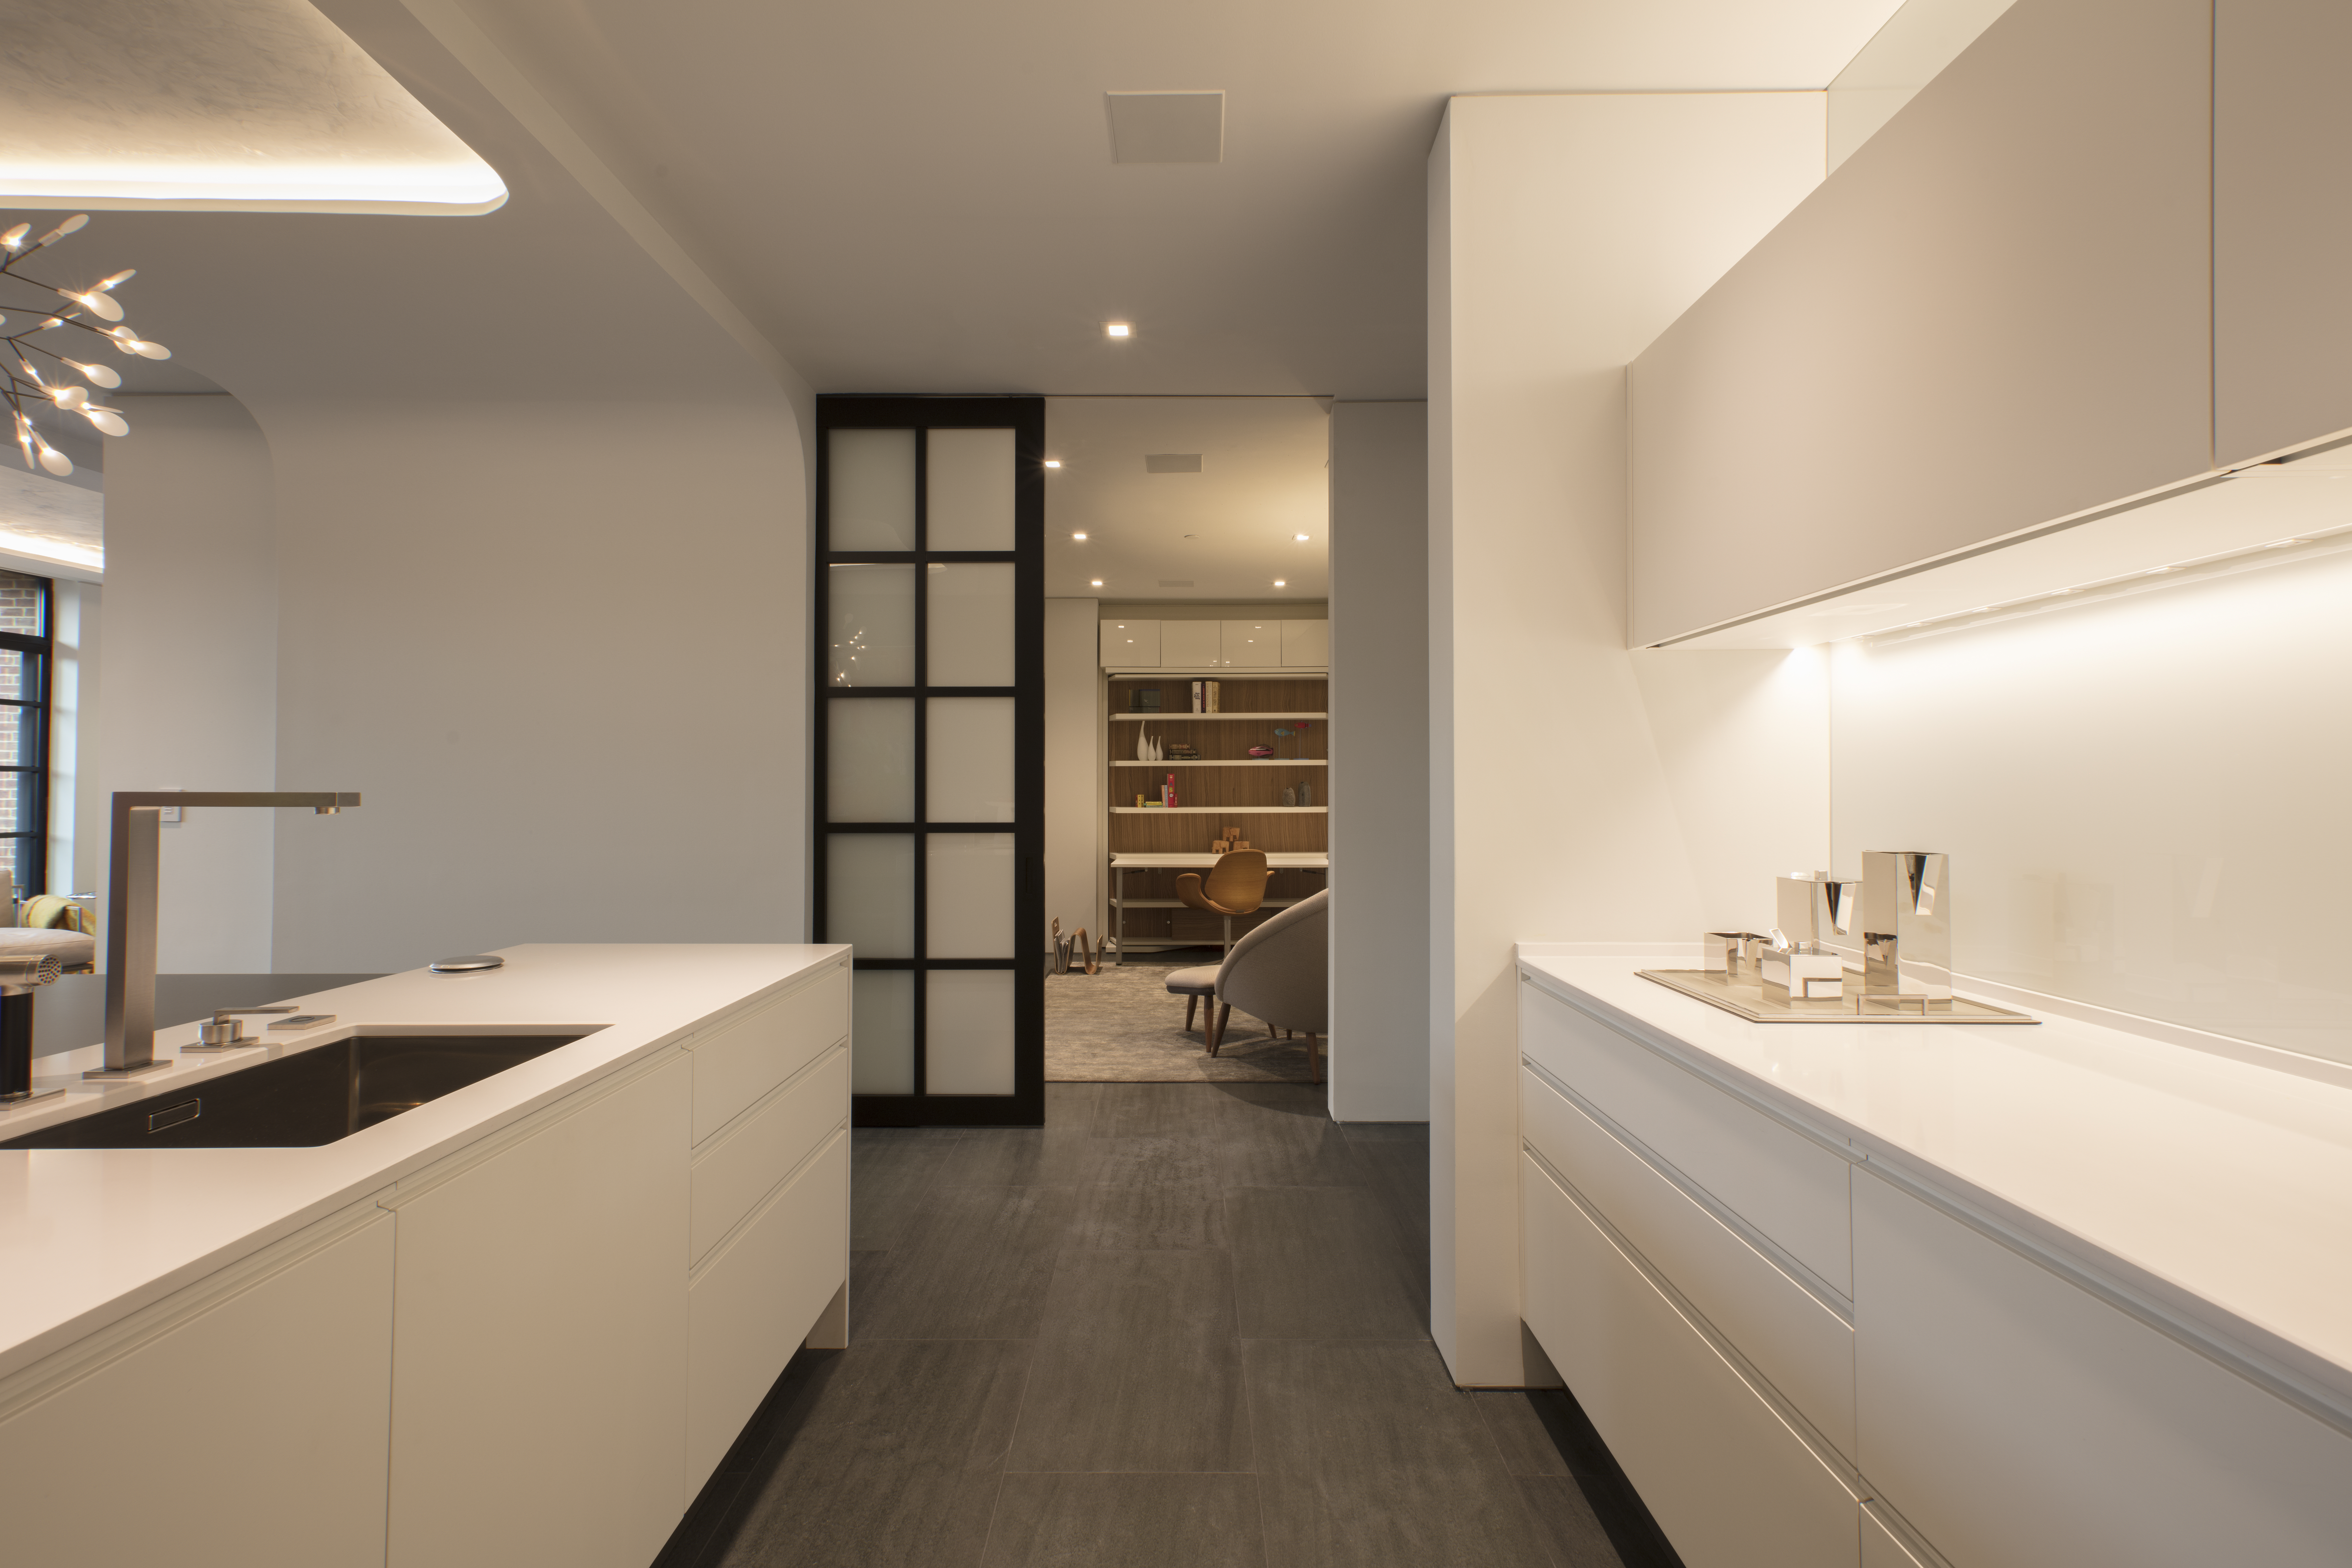 Architect Andrea Charalambous opened the condo's floor plan to create a light and airy kitchen.